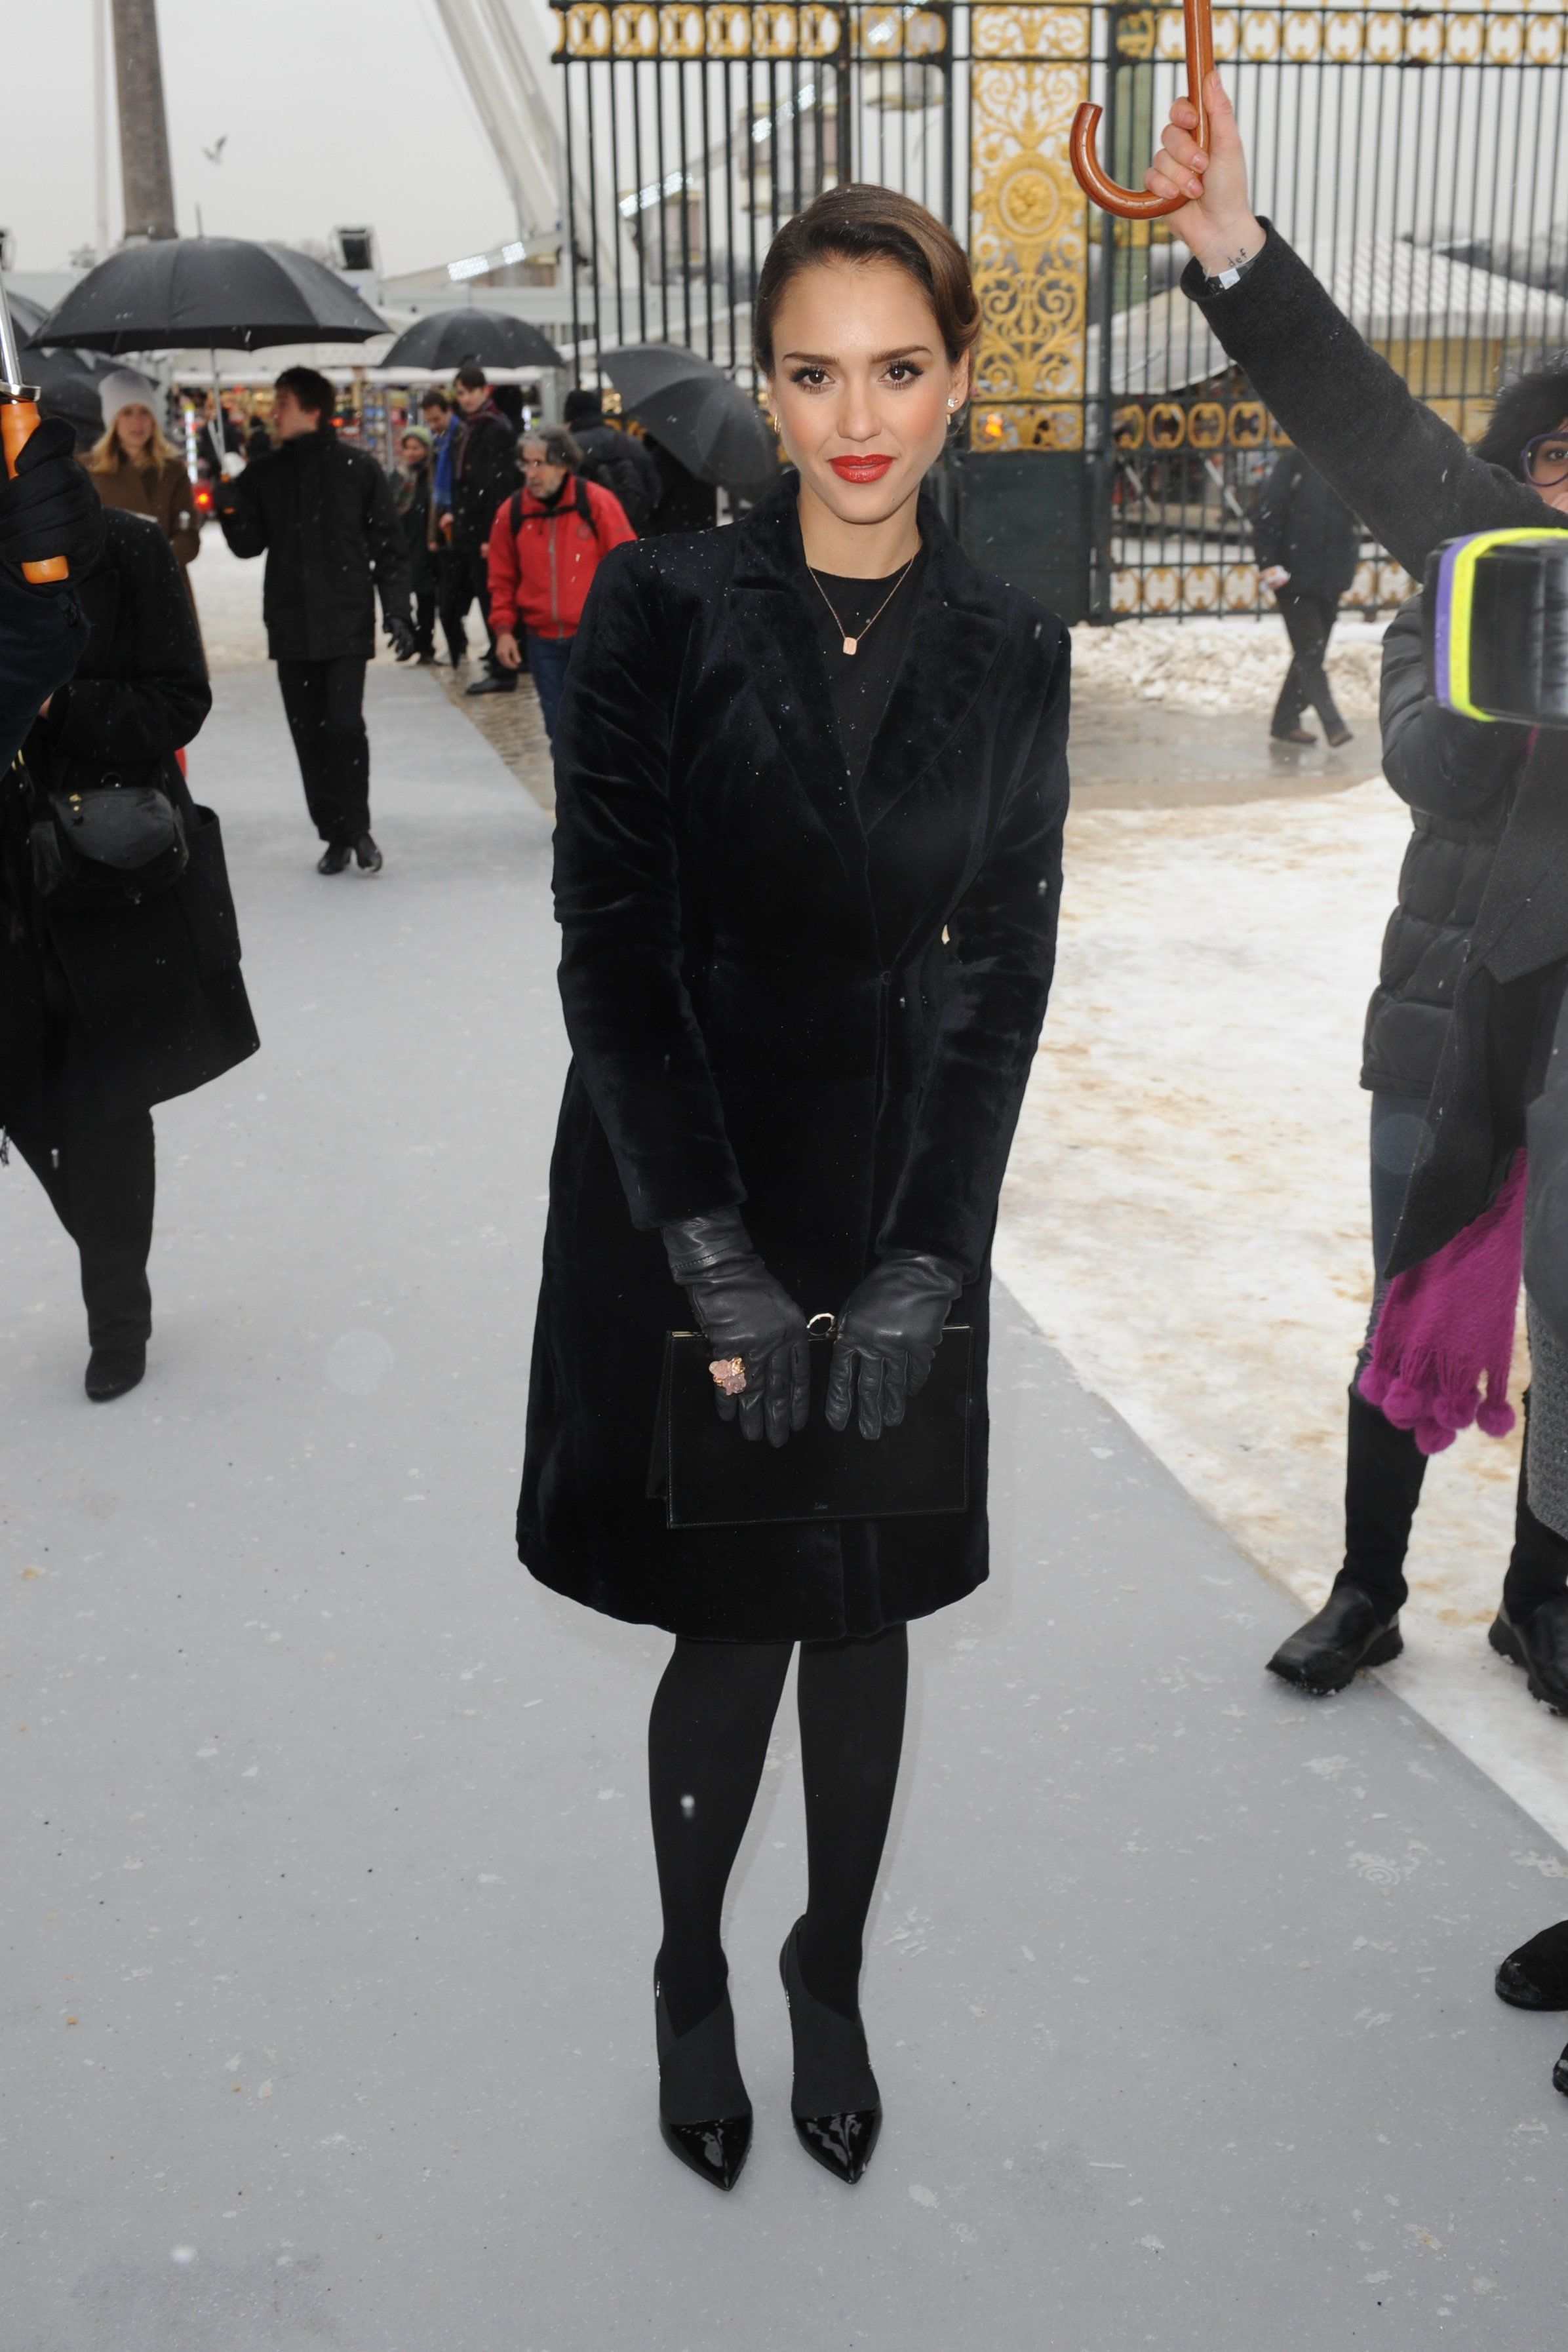 Jessica_Alba_Dior_SS_2013_Haute_Couture_show_at_PFW_012113_01